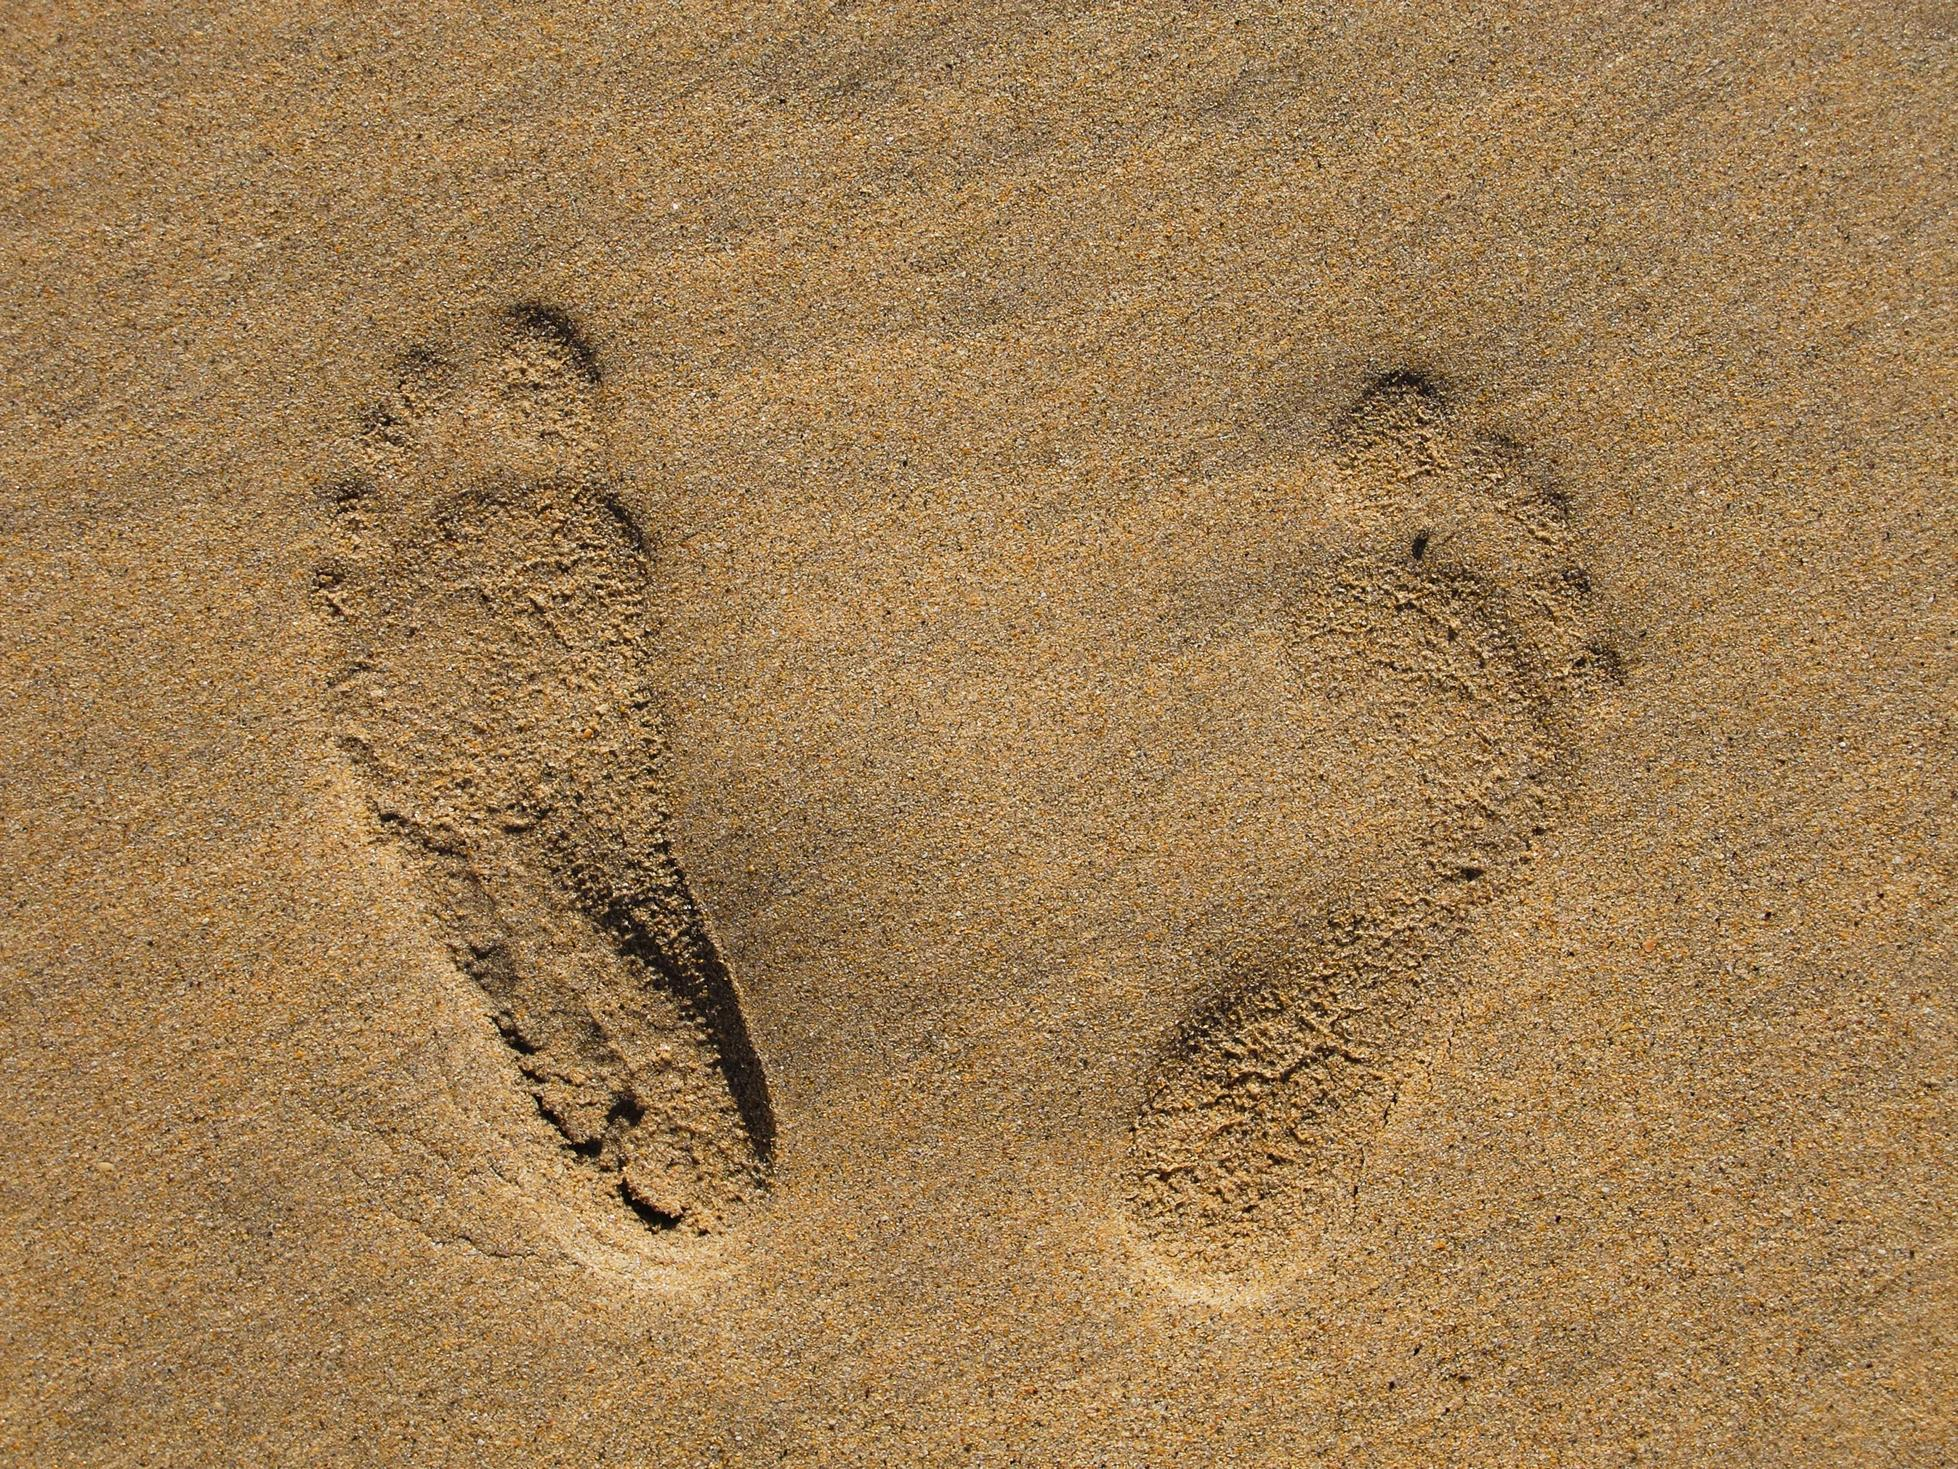 Horse hoof prints in the sand